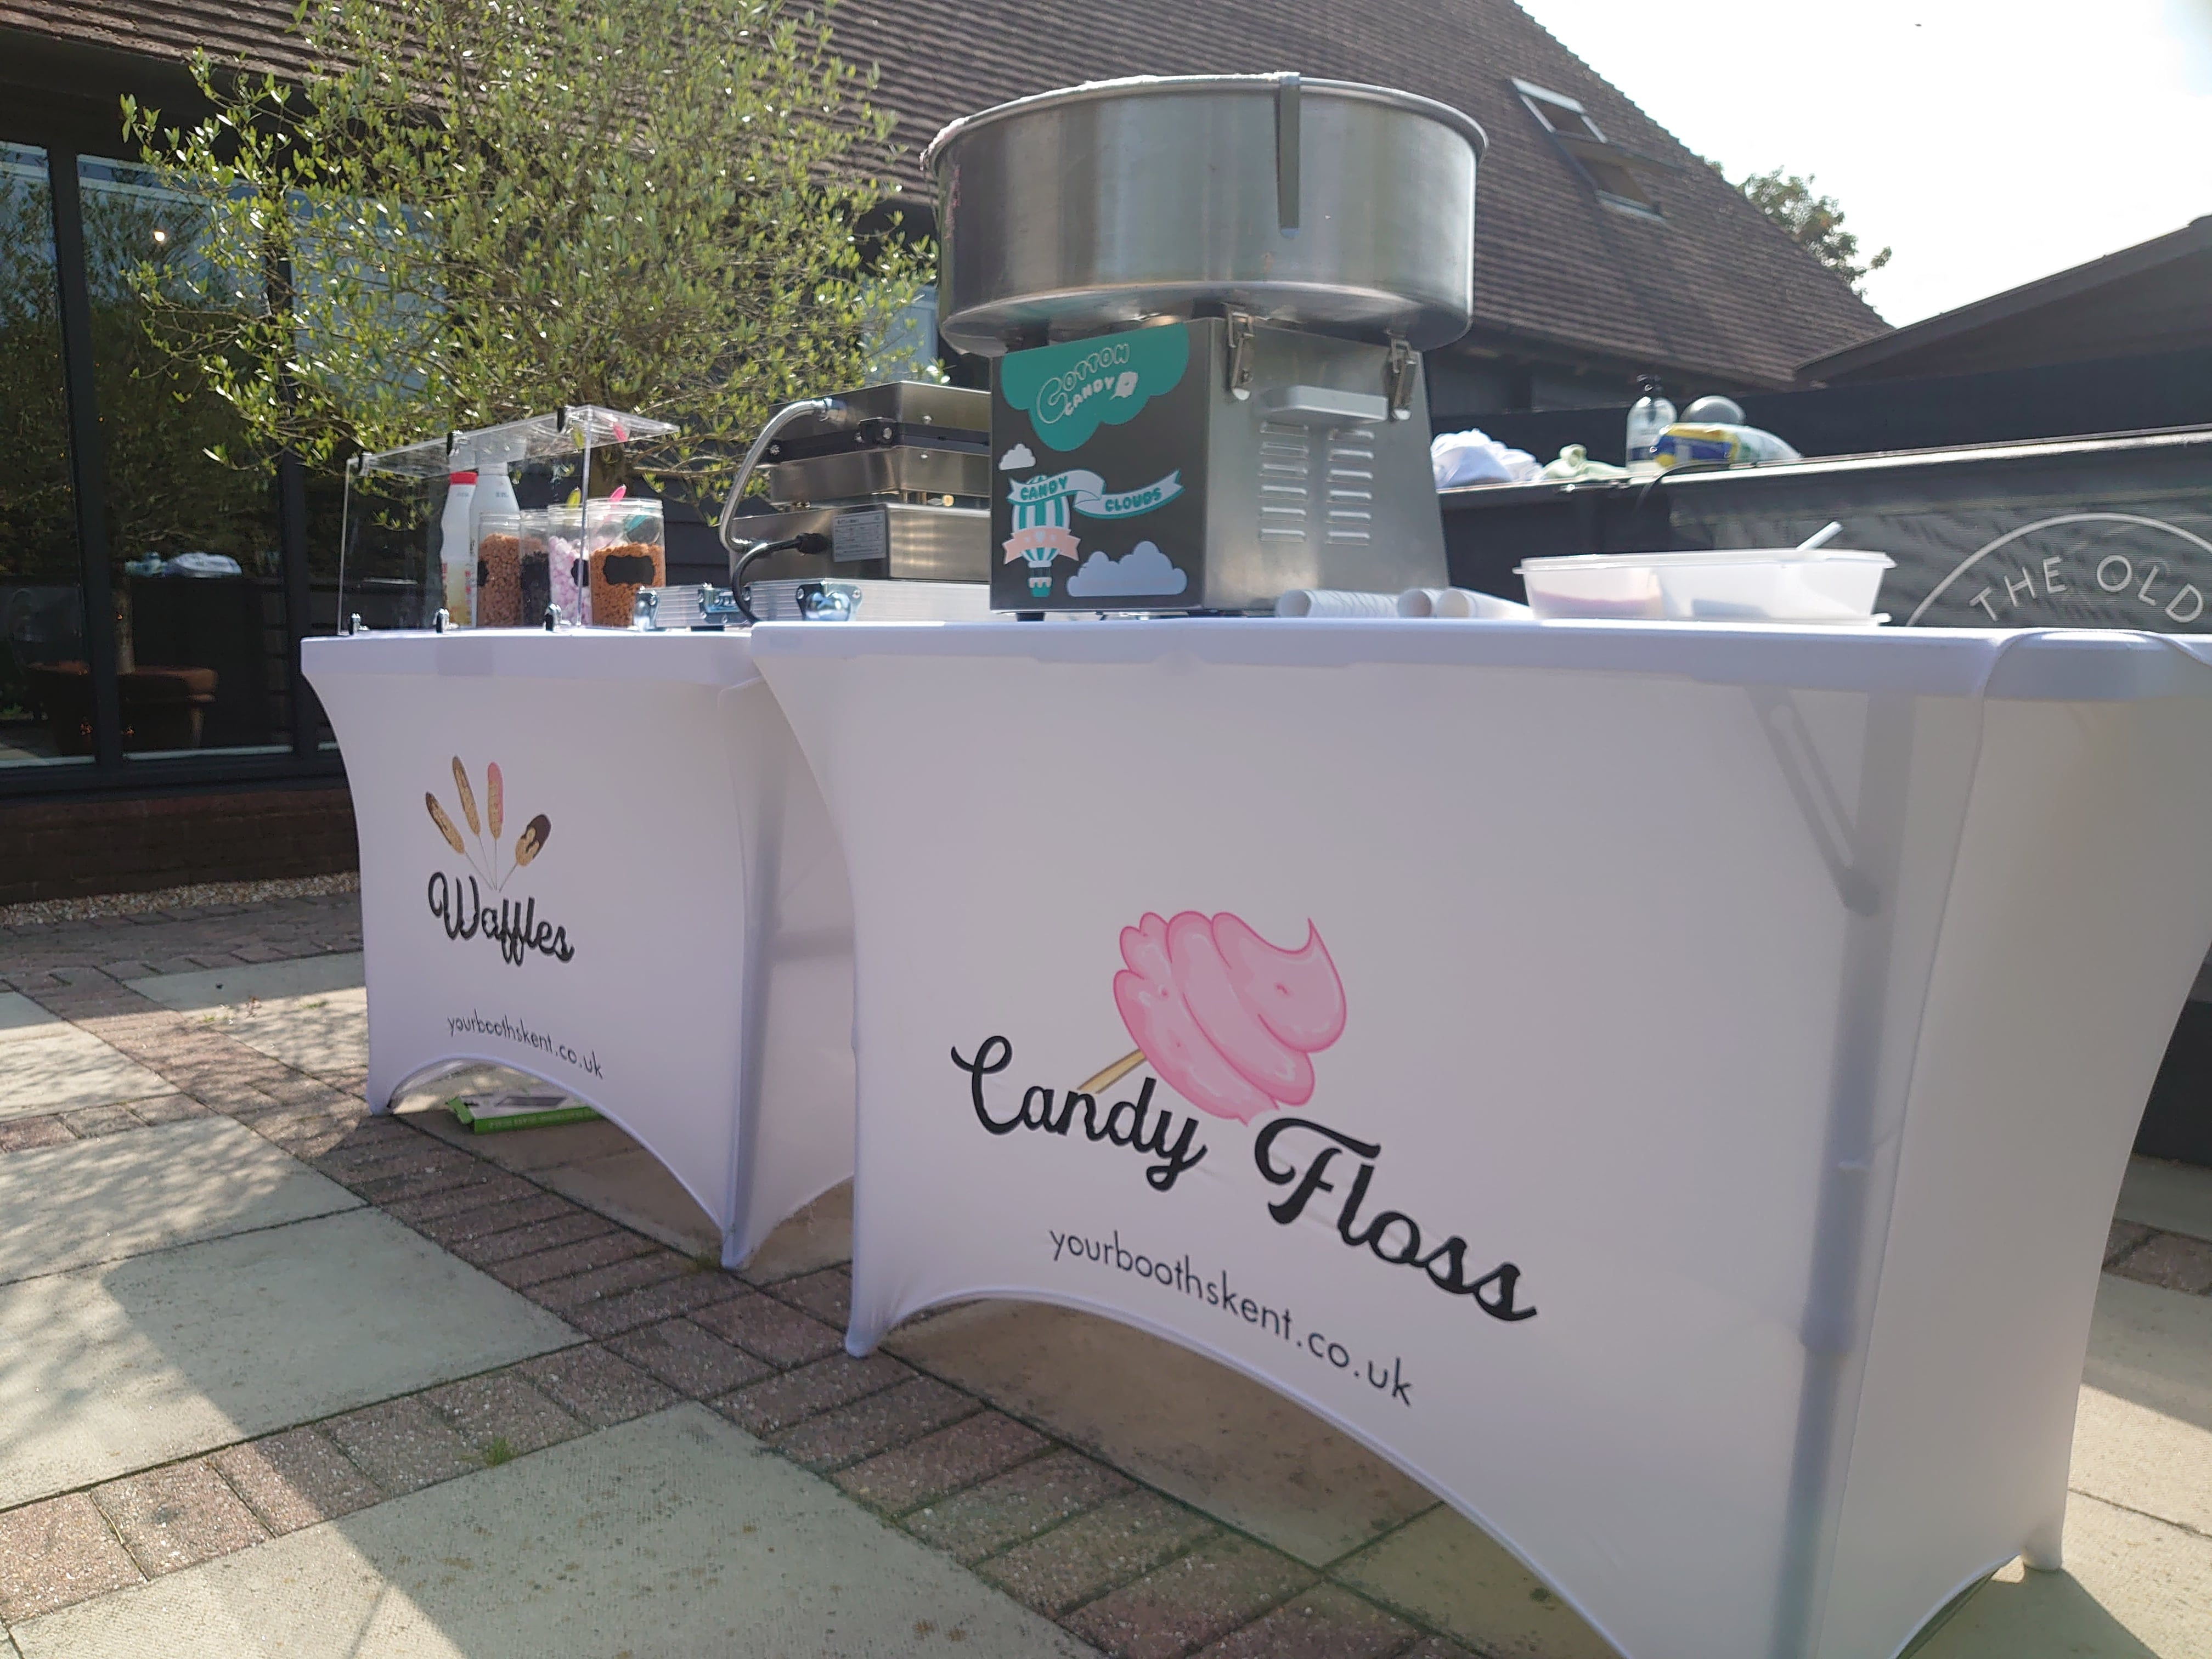 Popcorn Machine Hire Kent made on site and unlimited for your guests including some whacky flavours. Fully PAT Tested and holding Food & Hygiene Certificates, Book your Popcorn Machine Hire for your event today!